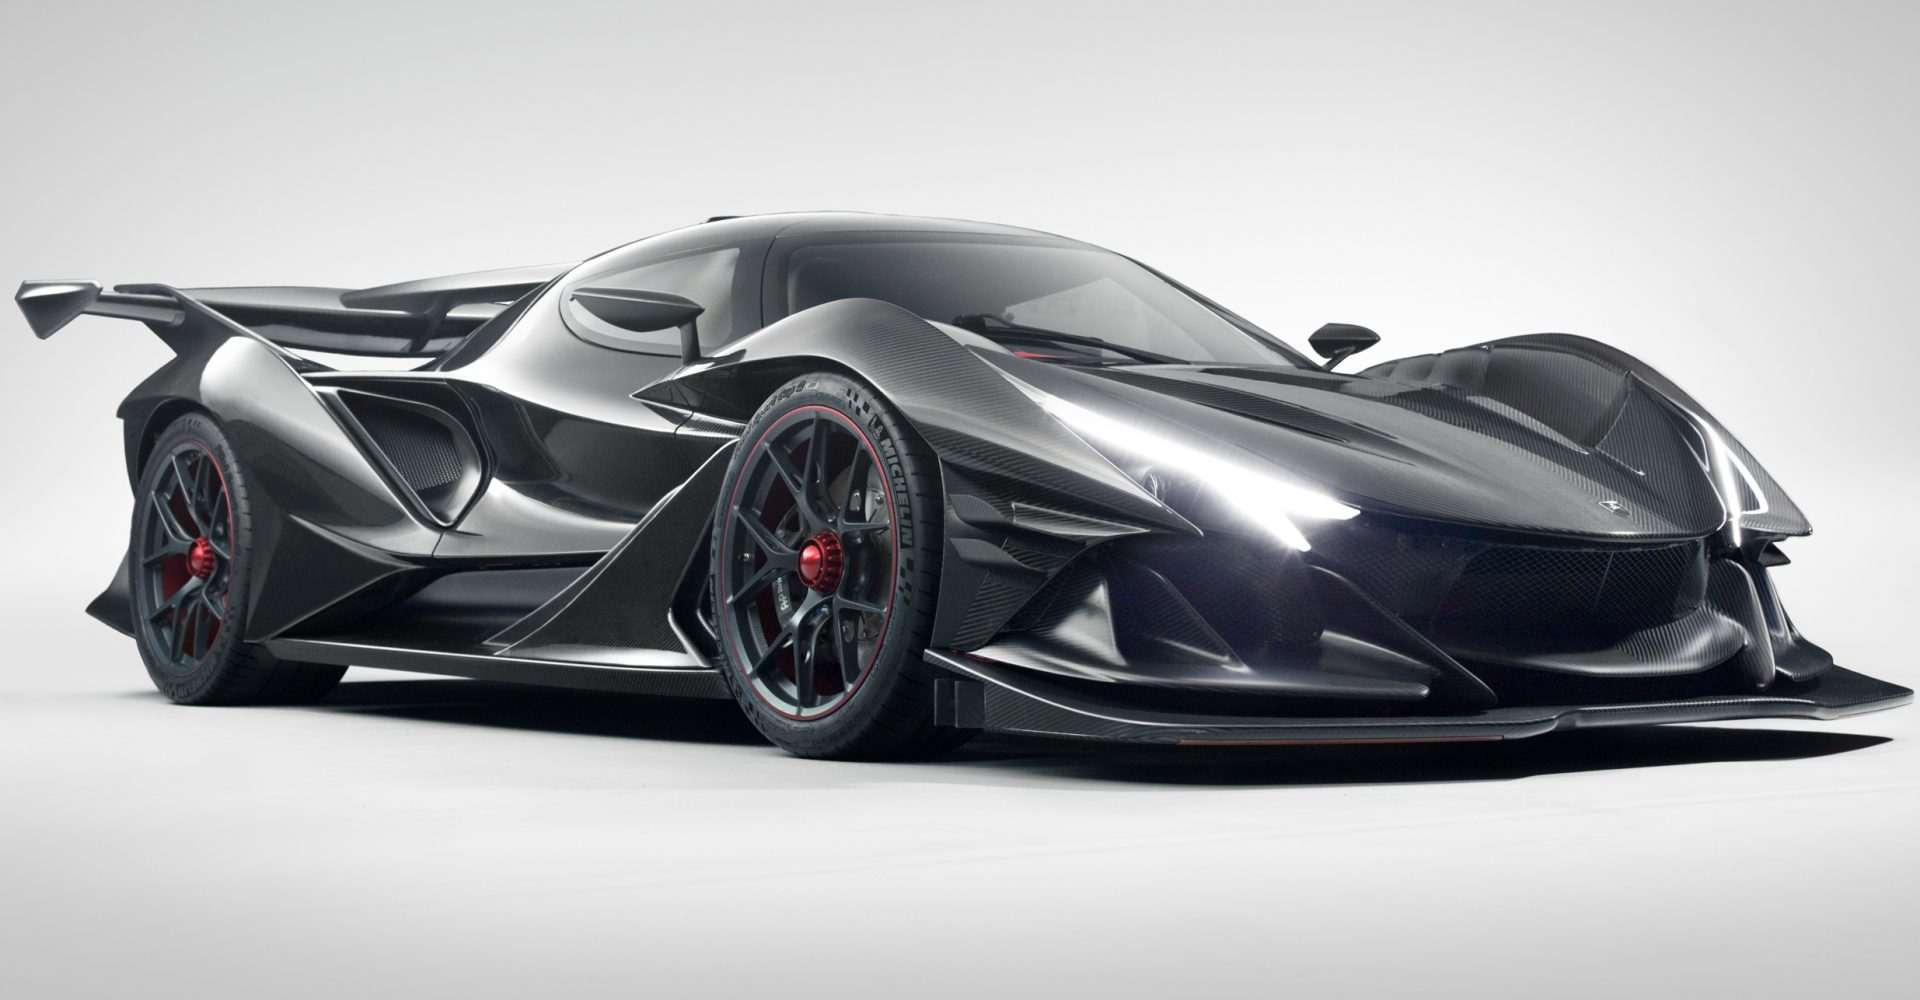 Apollo's new supercar is an insane V12 monster